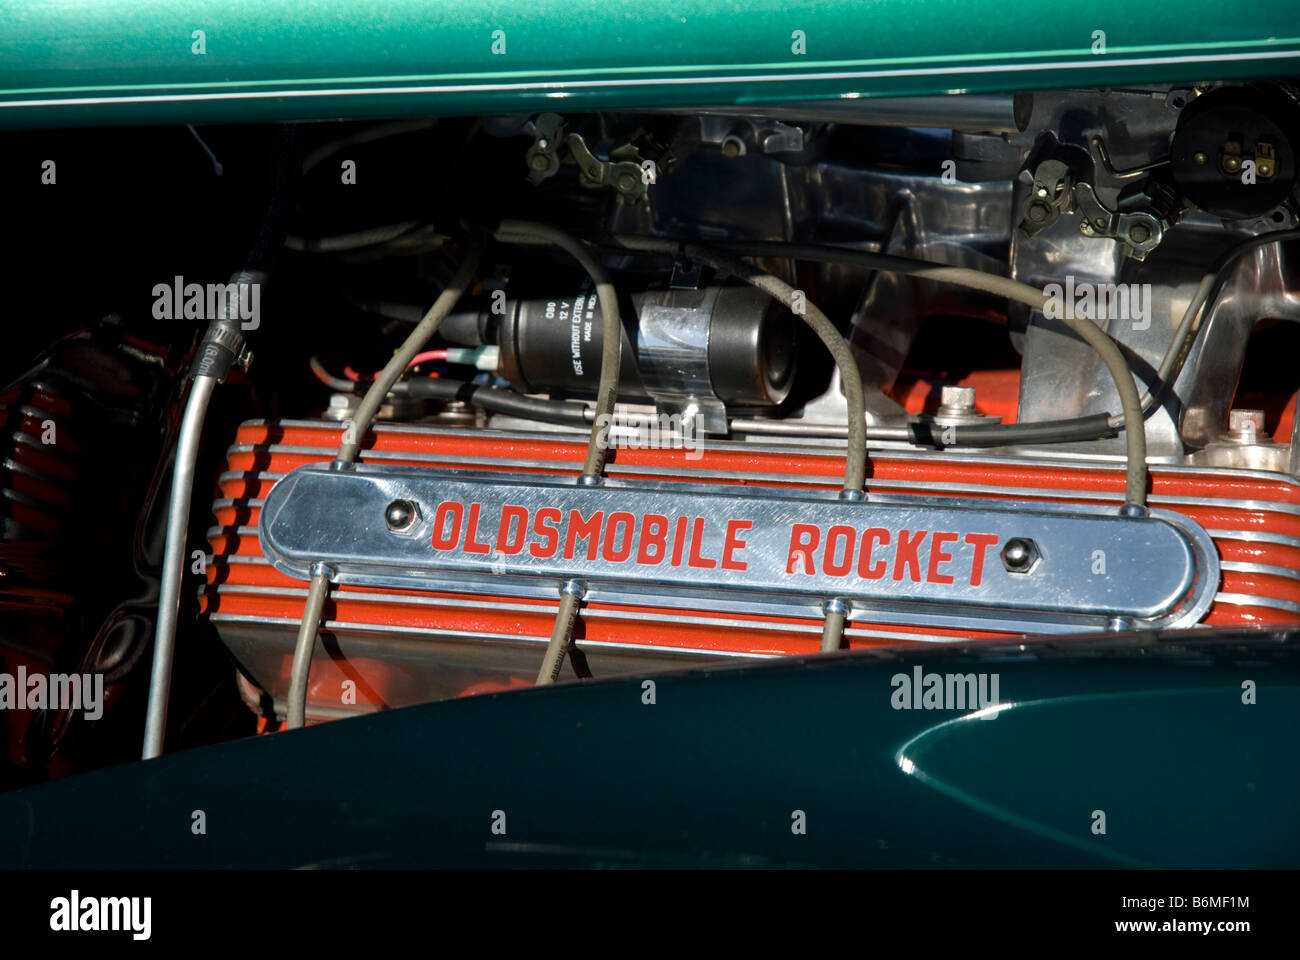 Outstanding A Valve Cover On An Oldsmobile Rocket Engine At A Car Show Stock Renstra Mohammedshrine Wiring Digital Resources Renstramohammedshrineorg